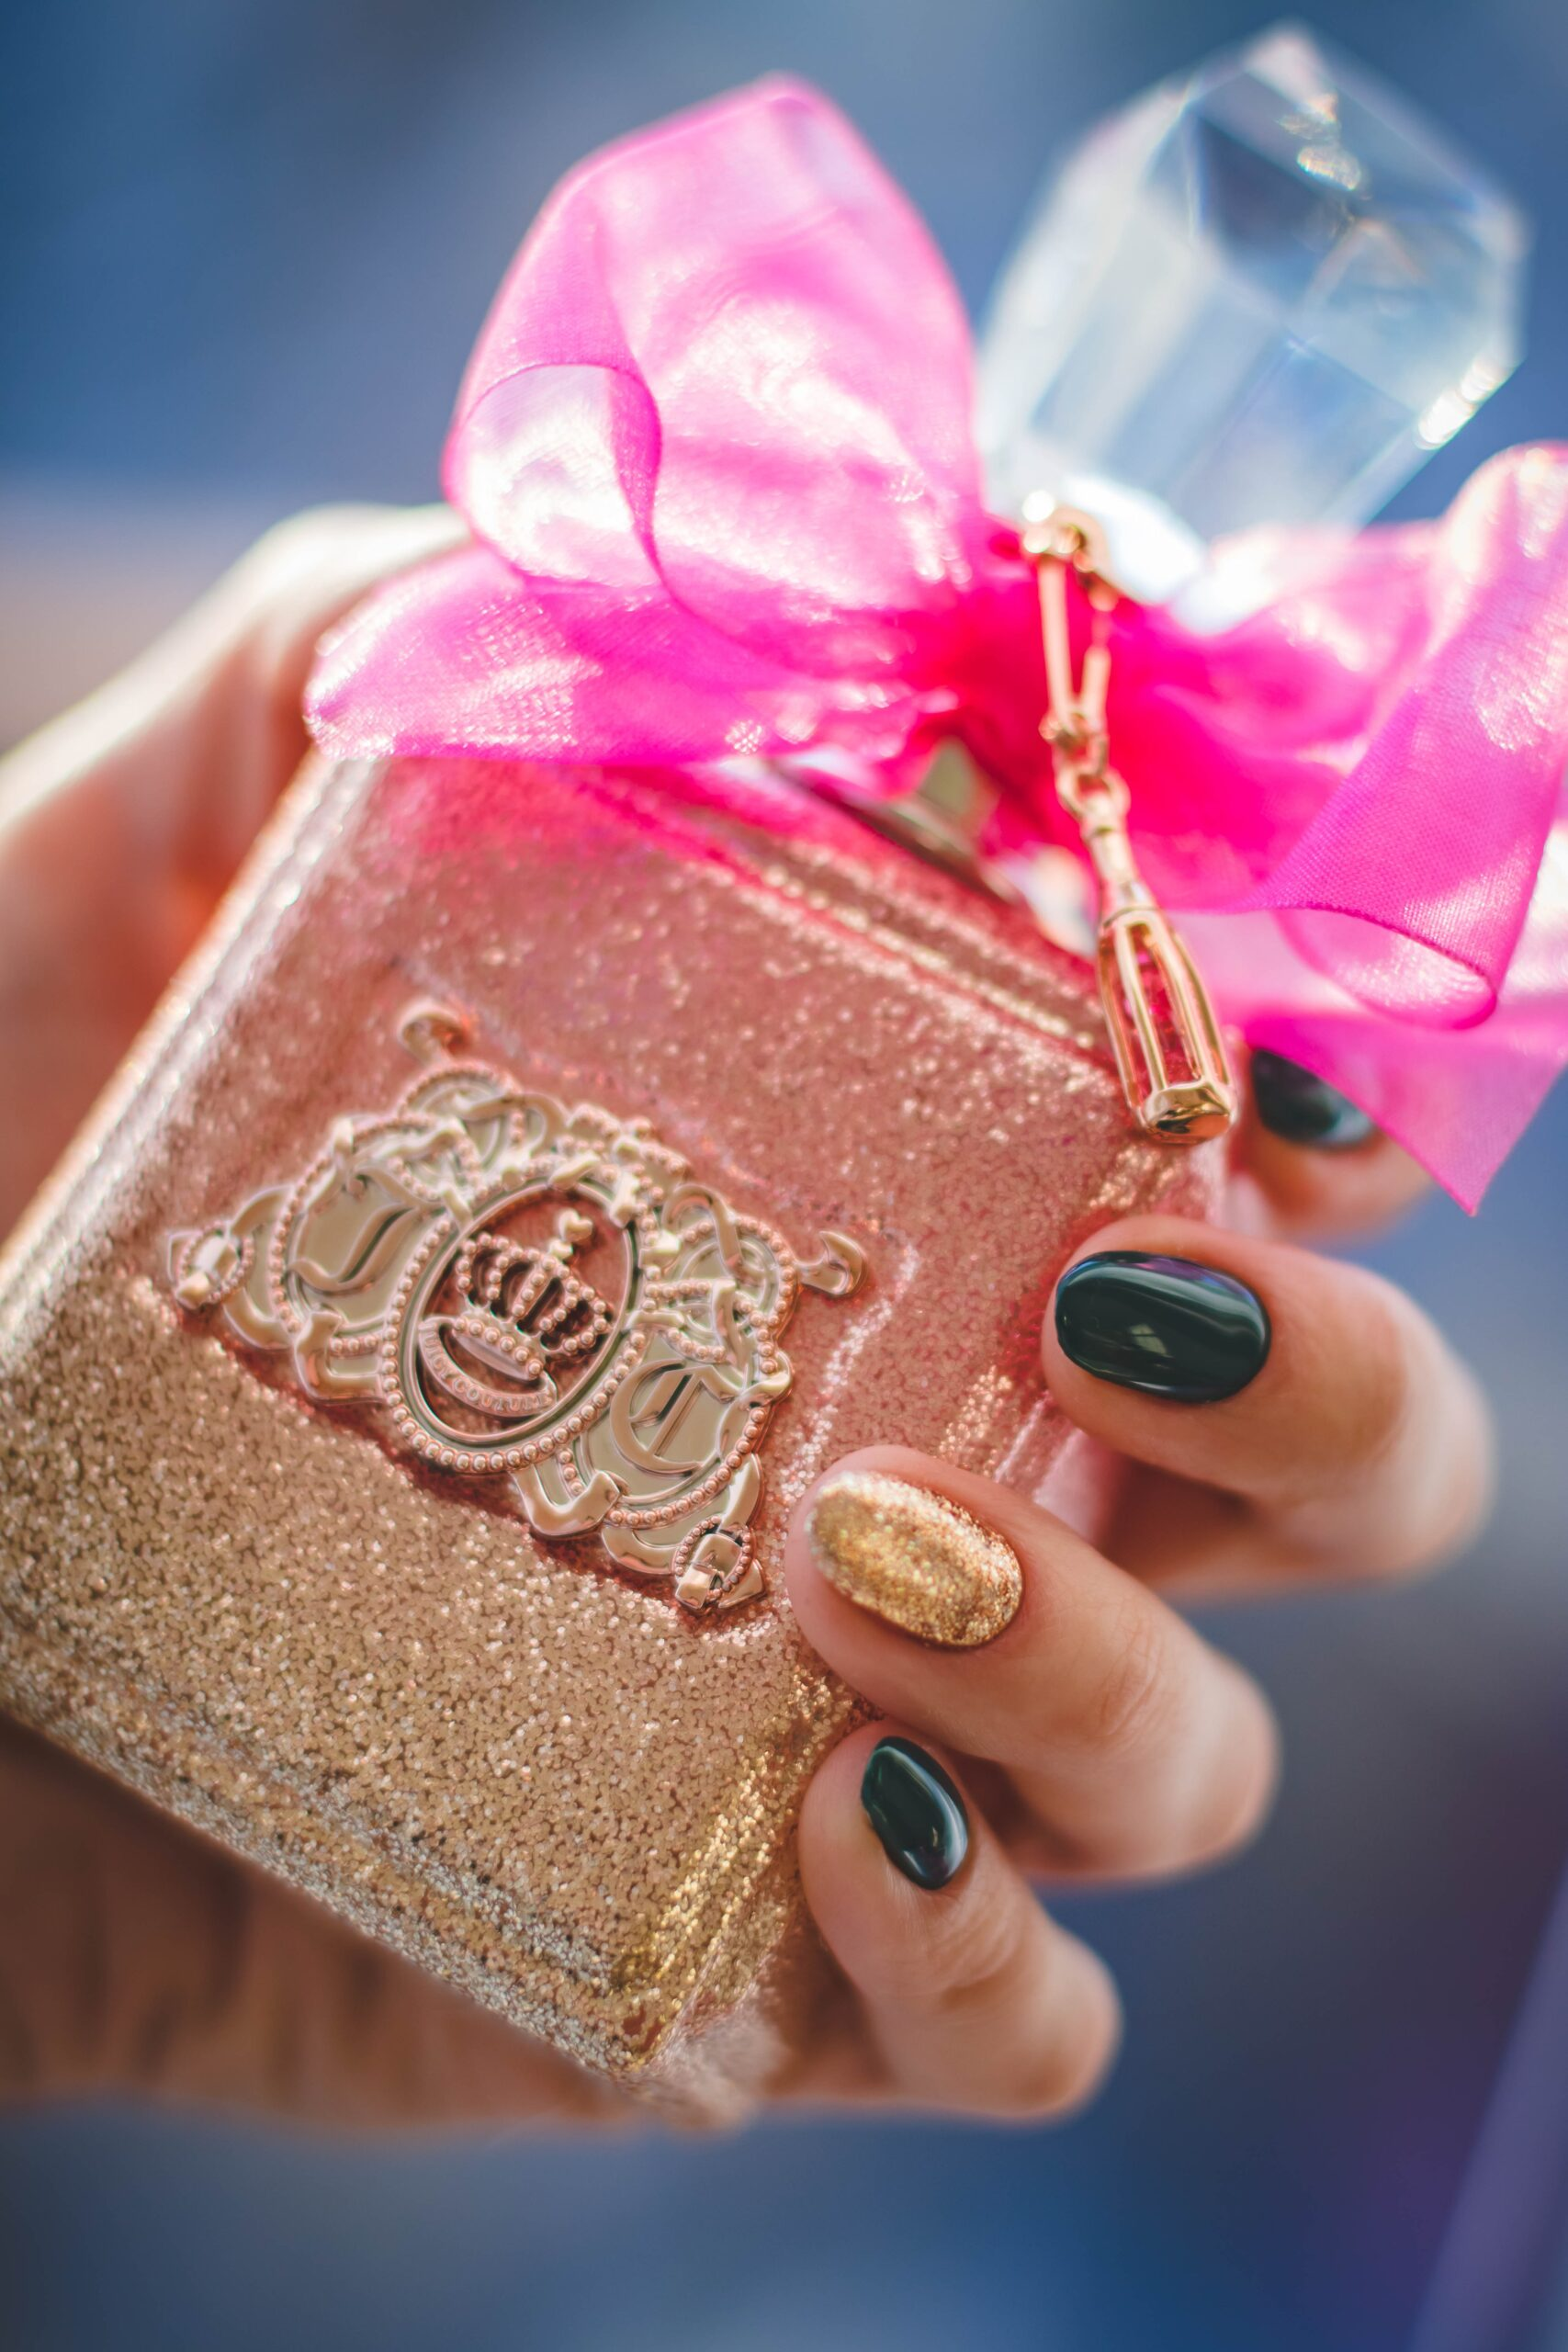 Perfume Licensing, Manufacturing @ Your Facility